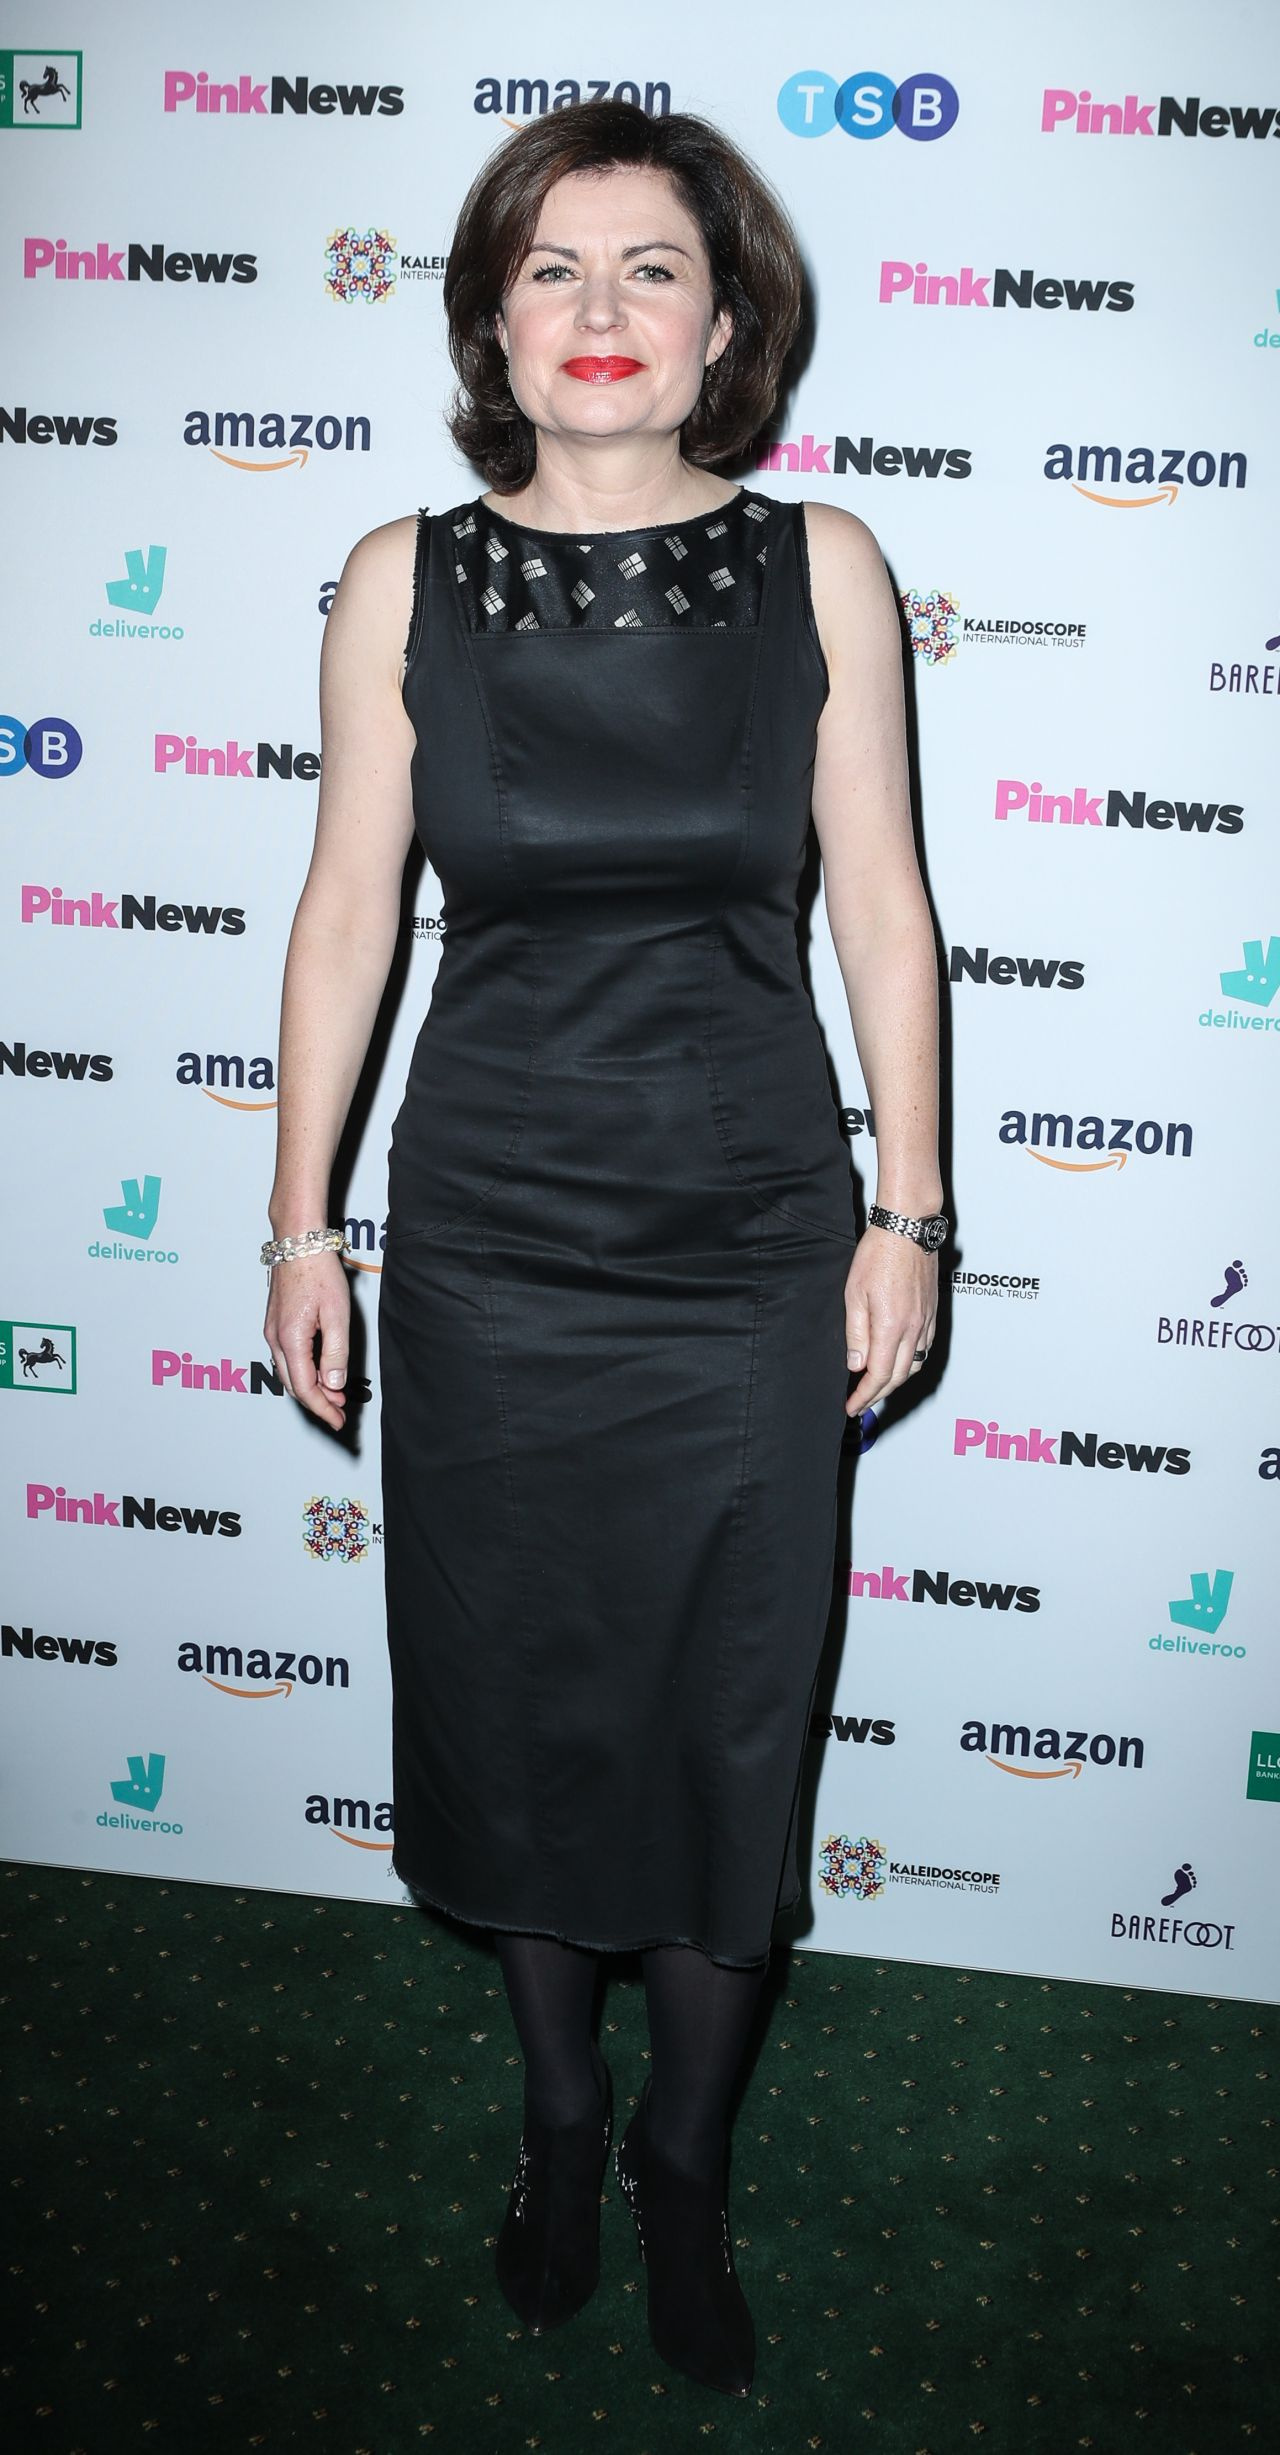 Jane Hill 2019 Pink News Awards In London 10 16 2019